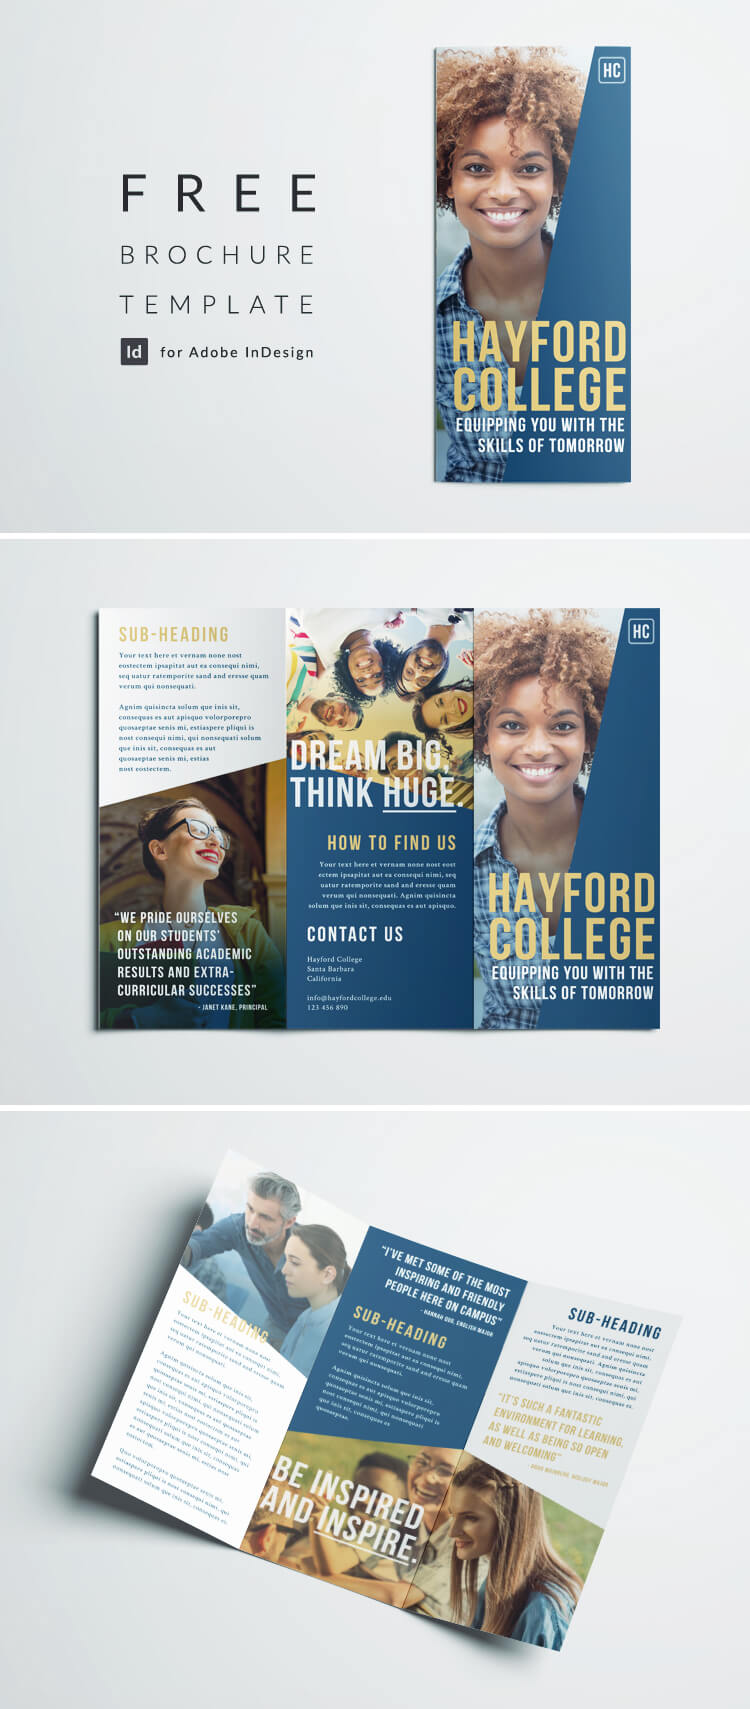 Professional InDesign Brochure Template - College Design - Free Download